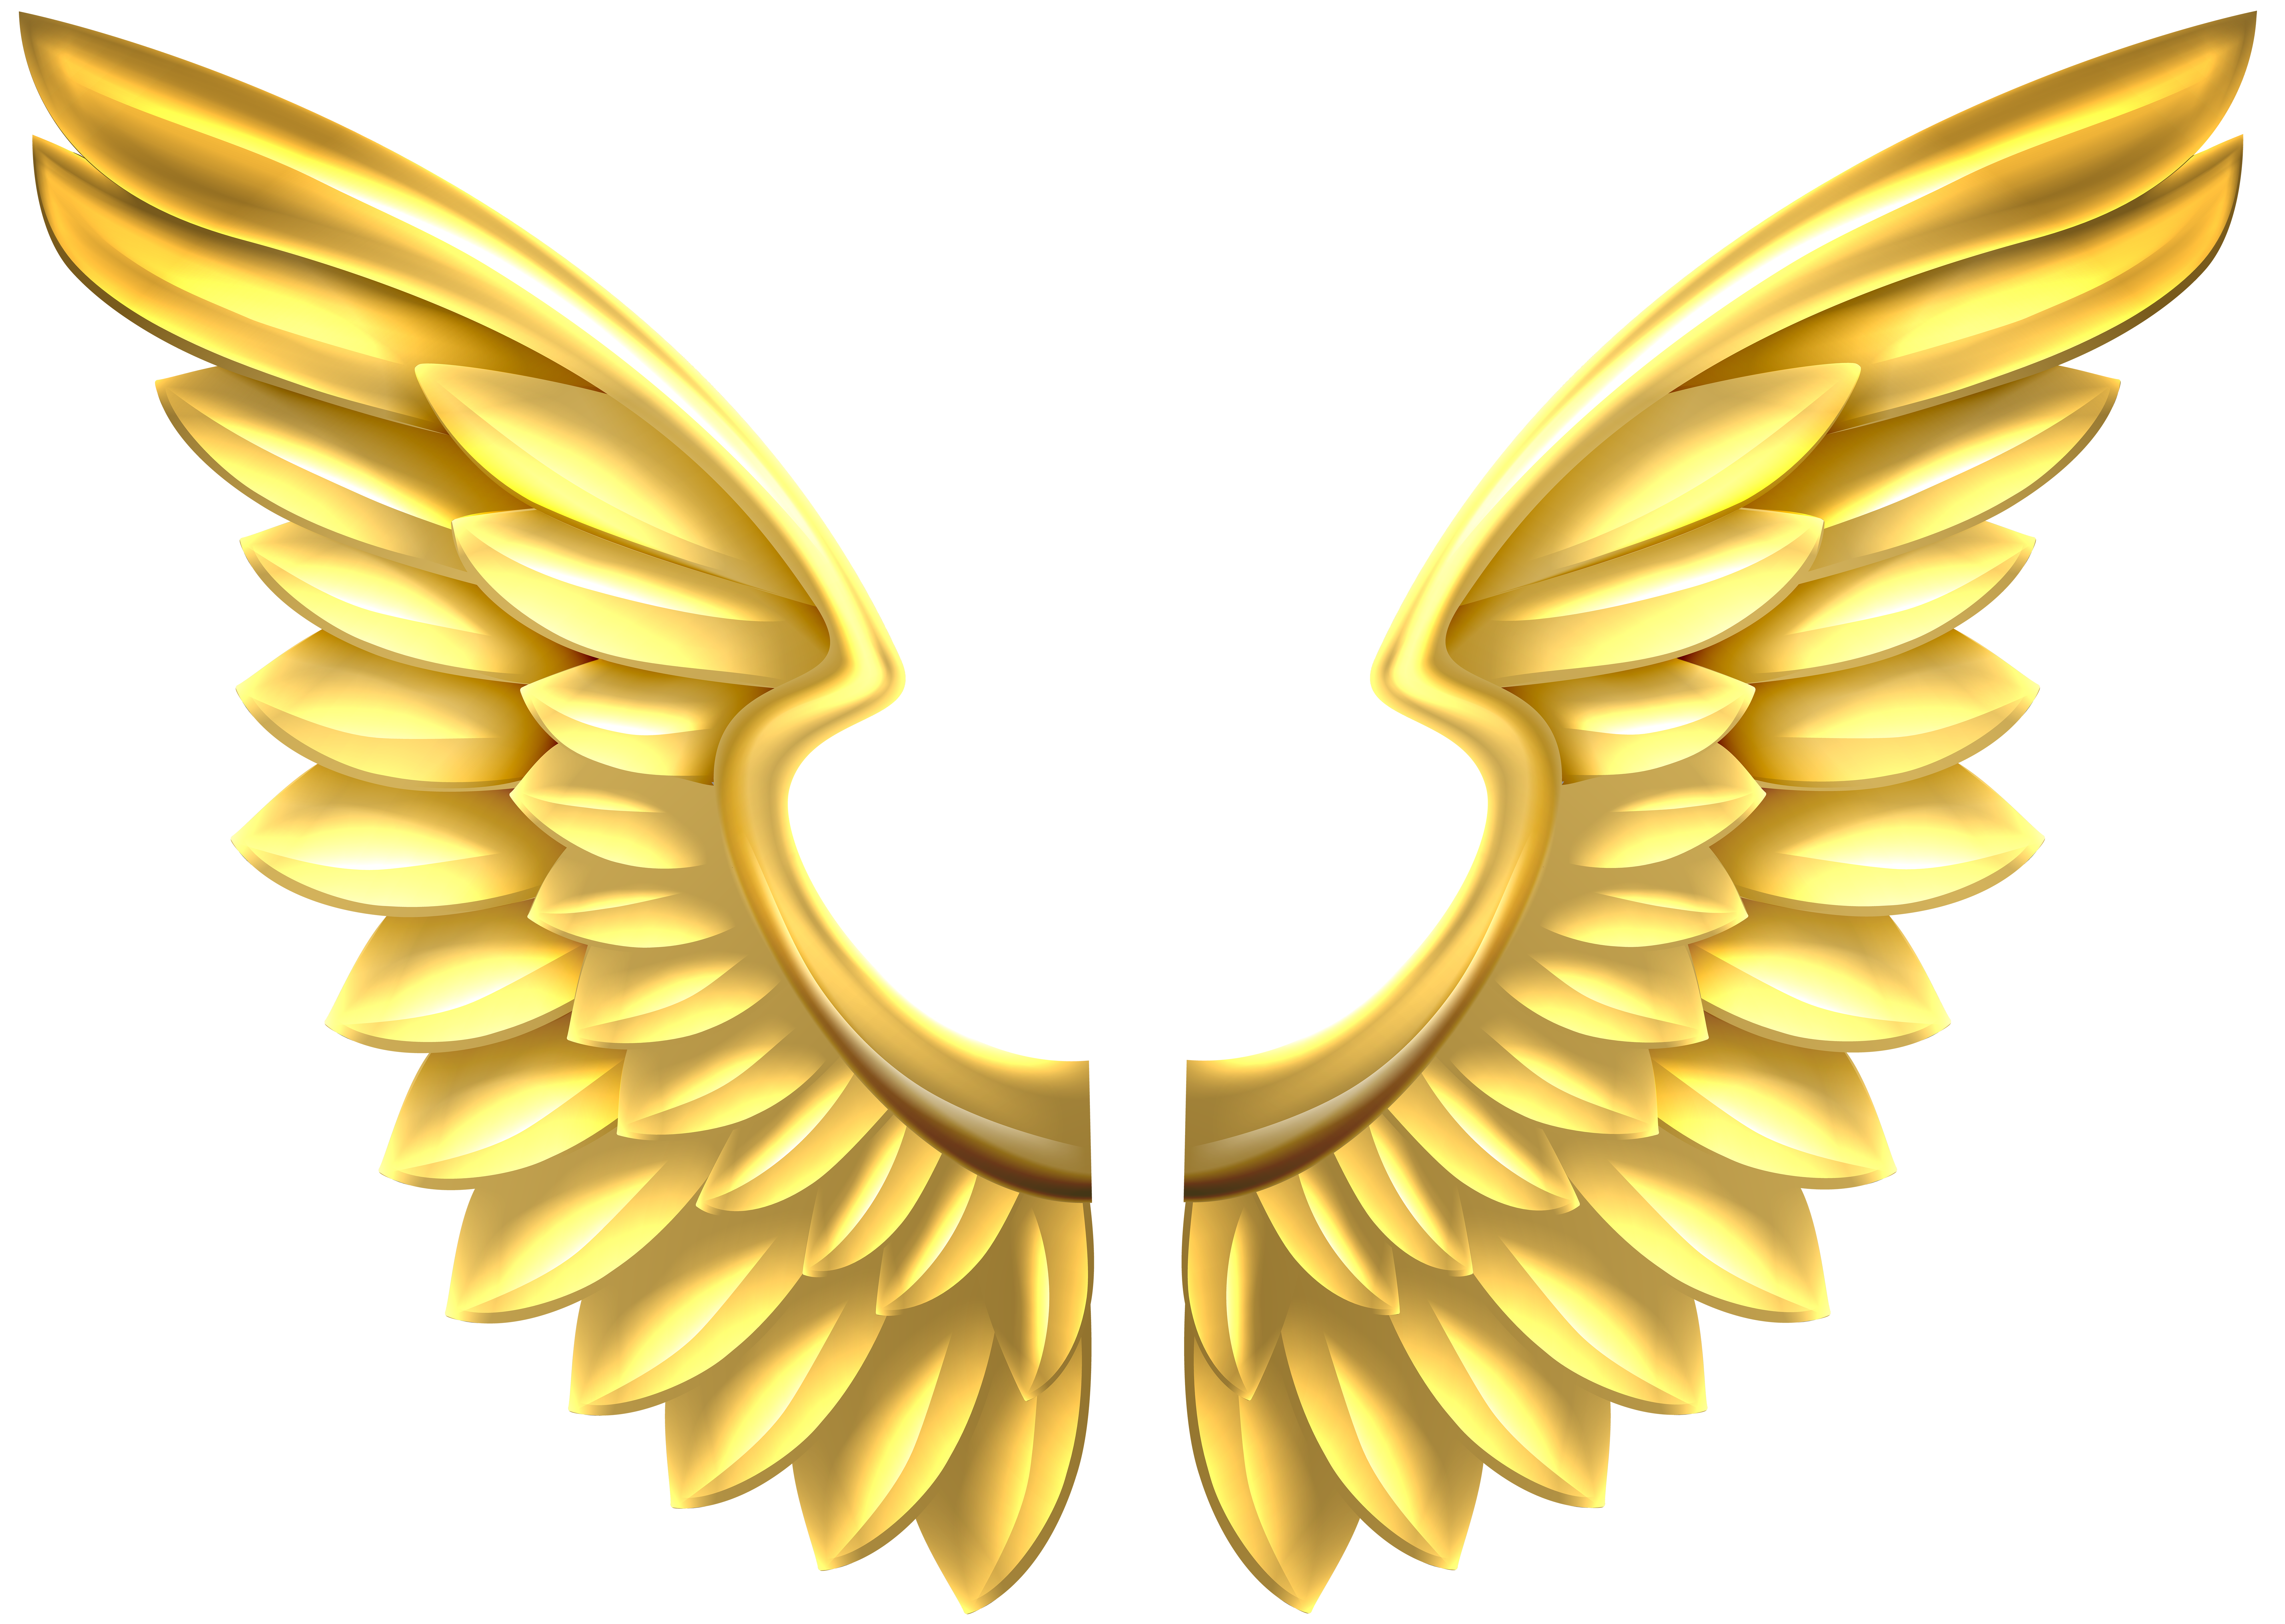 Anel trying to fly clipart clipart images gallery for free.